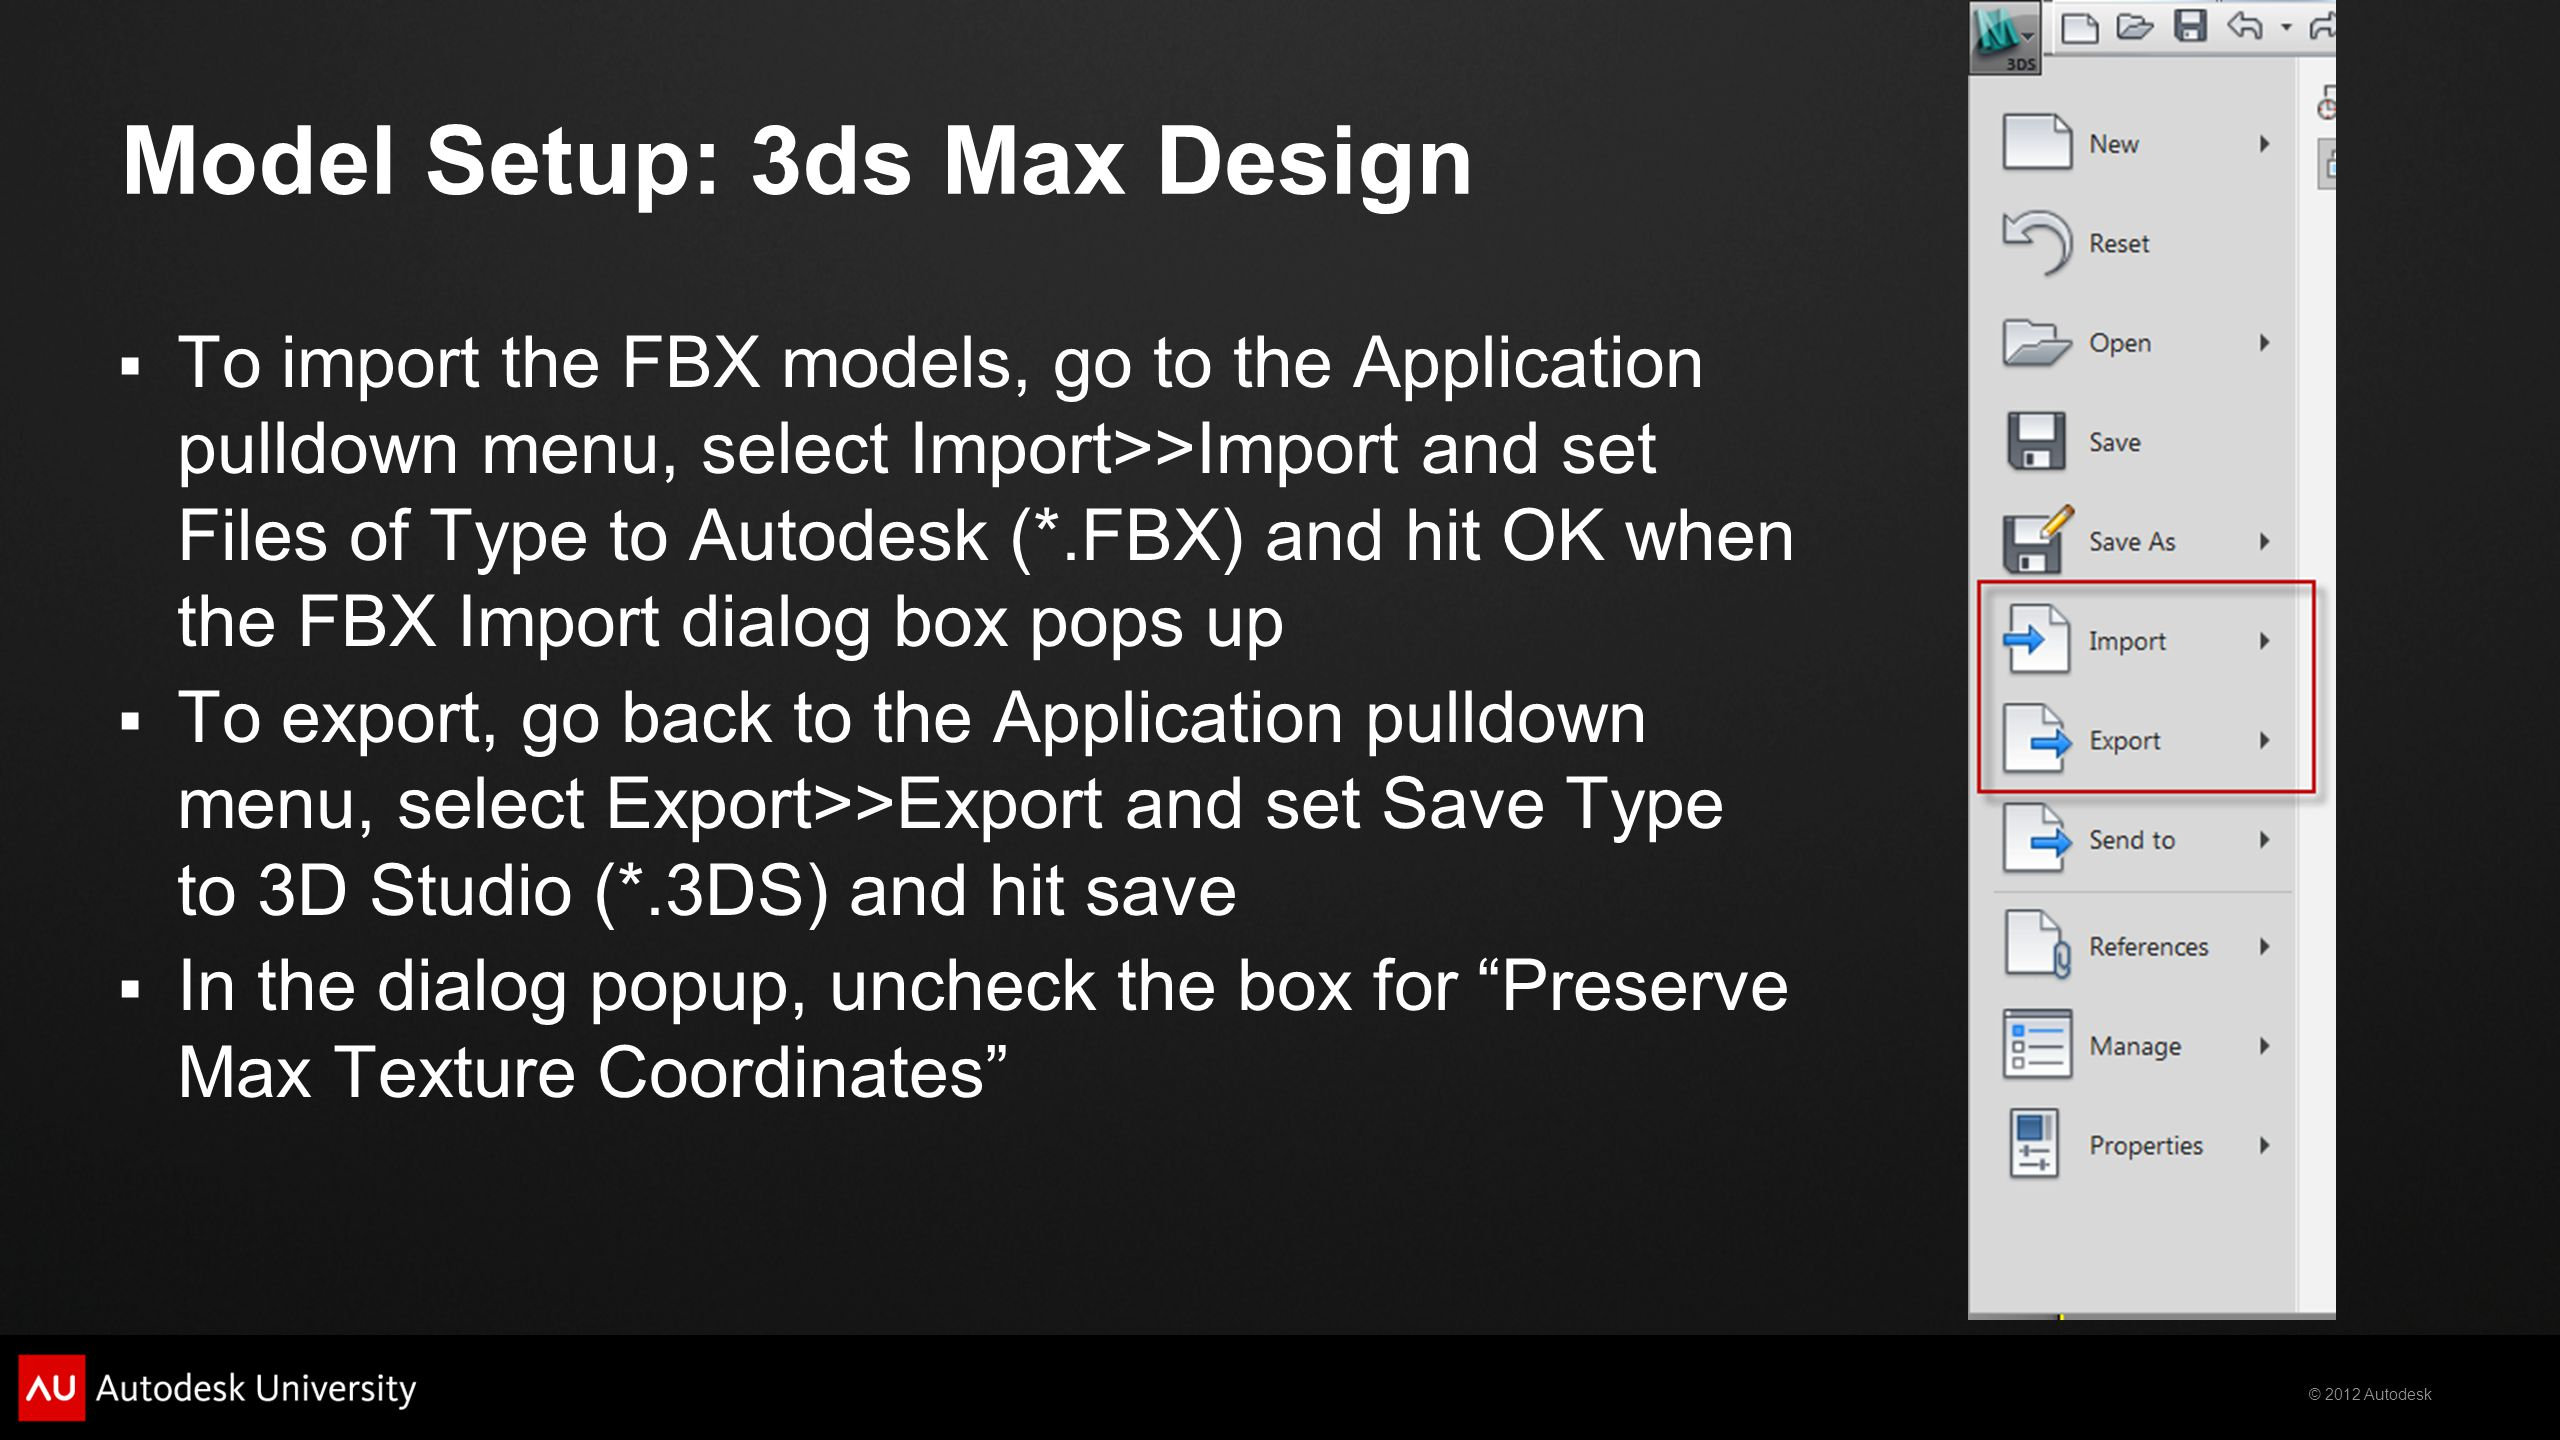 © 2012 Autodesk Model Setup: 3ds Max Design To import the FBX models, go to the Application pulldown menu, select Import>>Import and set Files of Type to Autodesk (*.FBX) and hit OK when the FBX Import dialog box pops up To export, go back to the Application pulldown menu, select Export>>Export and set Save Type to 3D Studio (*.3DS) and hit save In the dialog popup, uncheck the box for Preserve Max Texture Coordinates